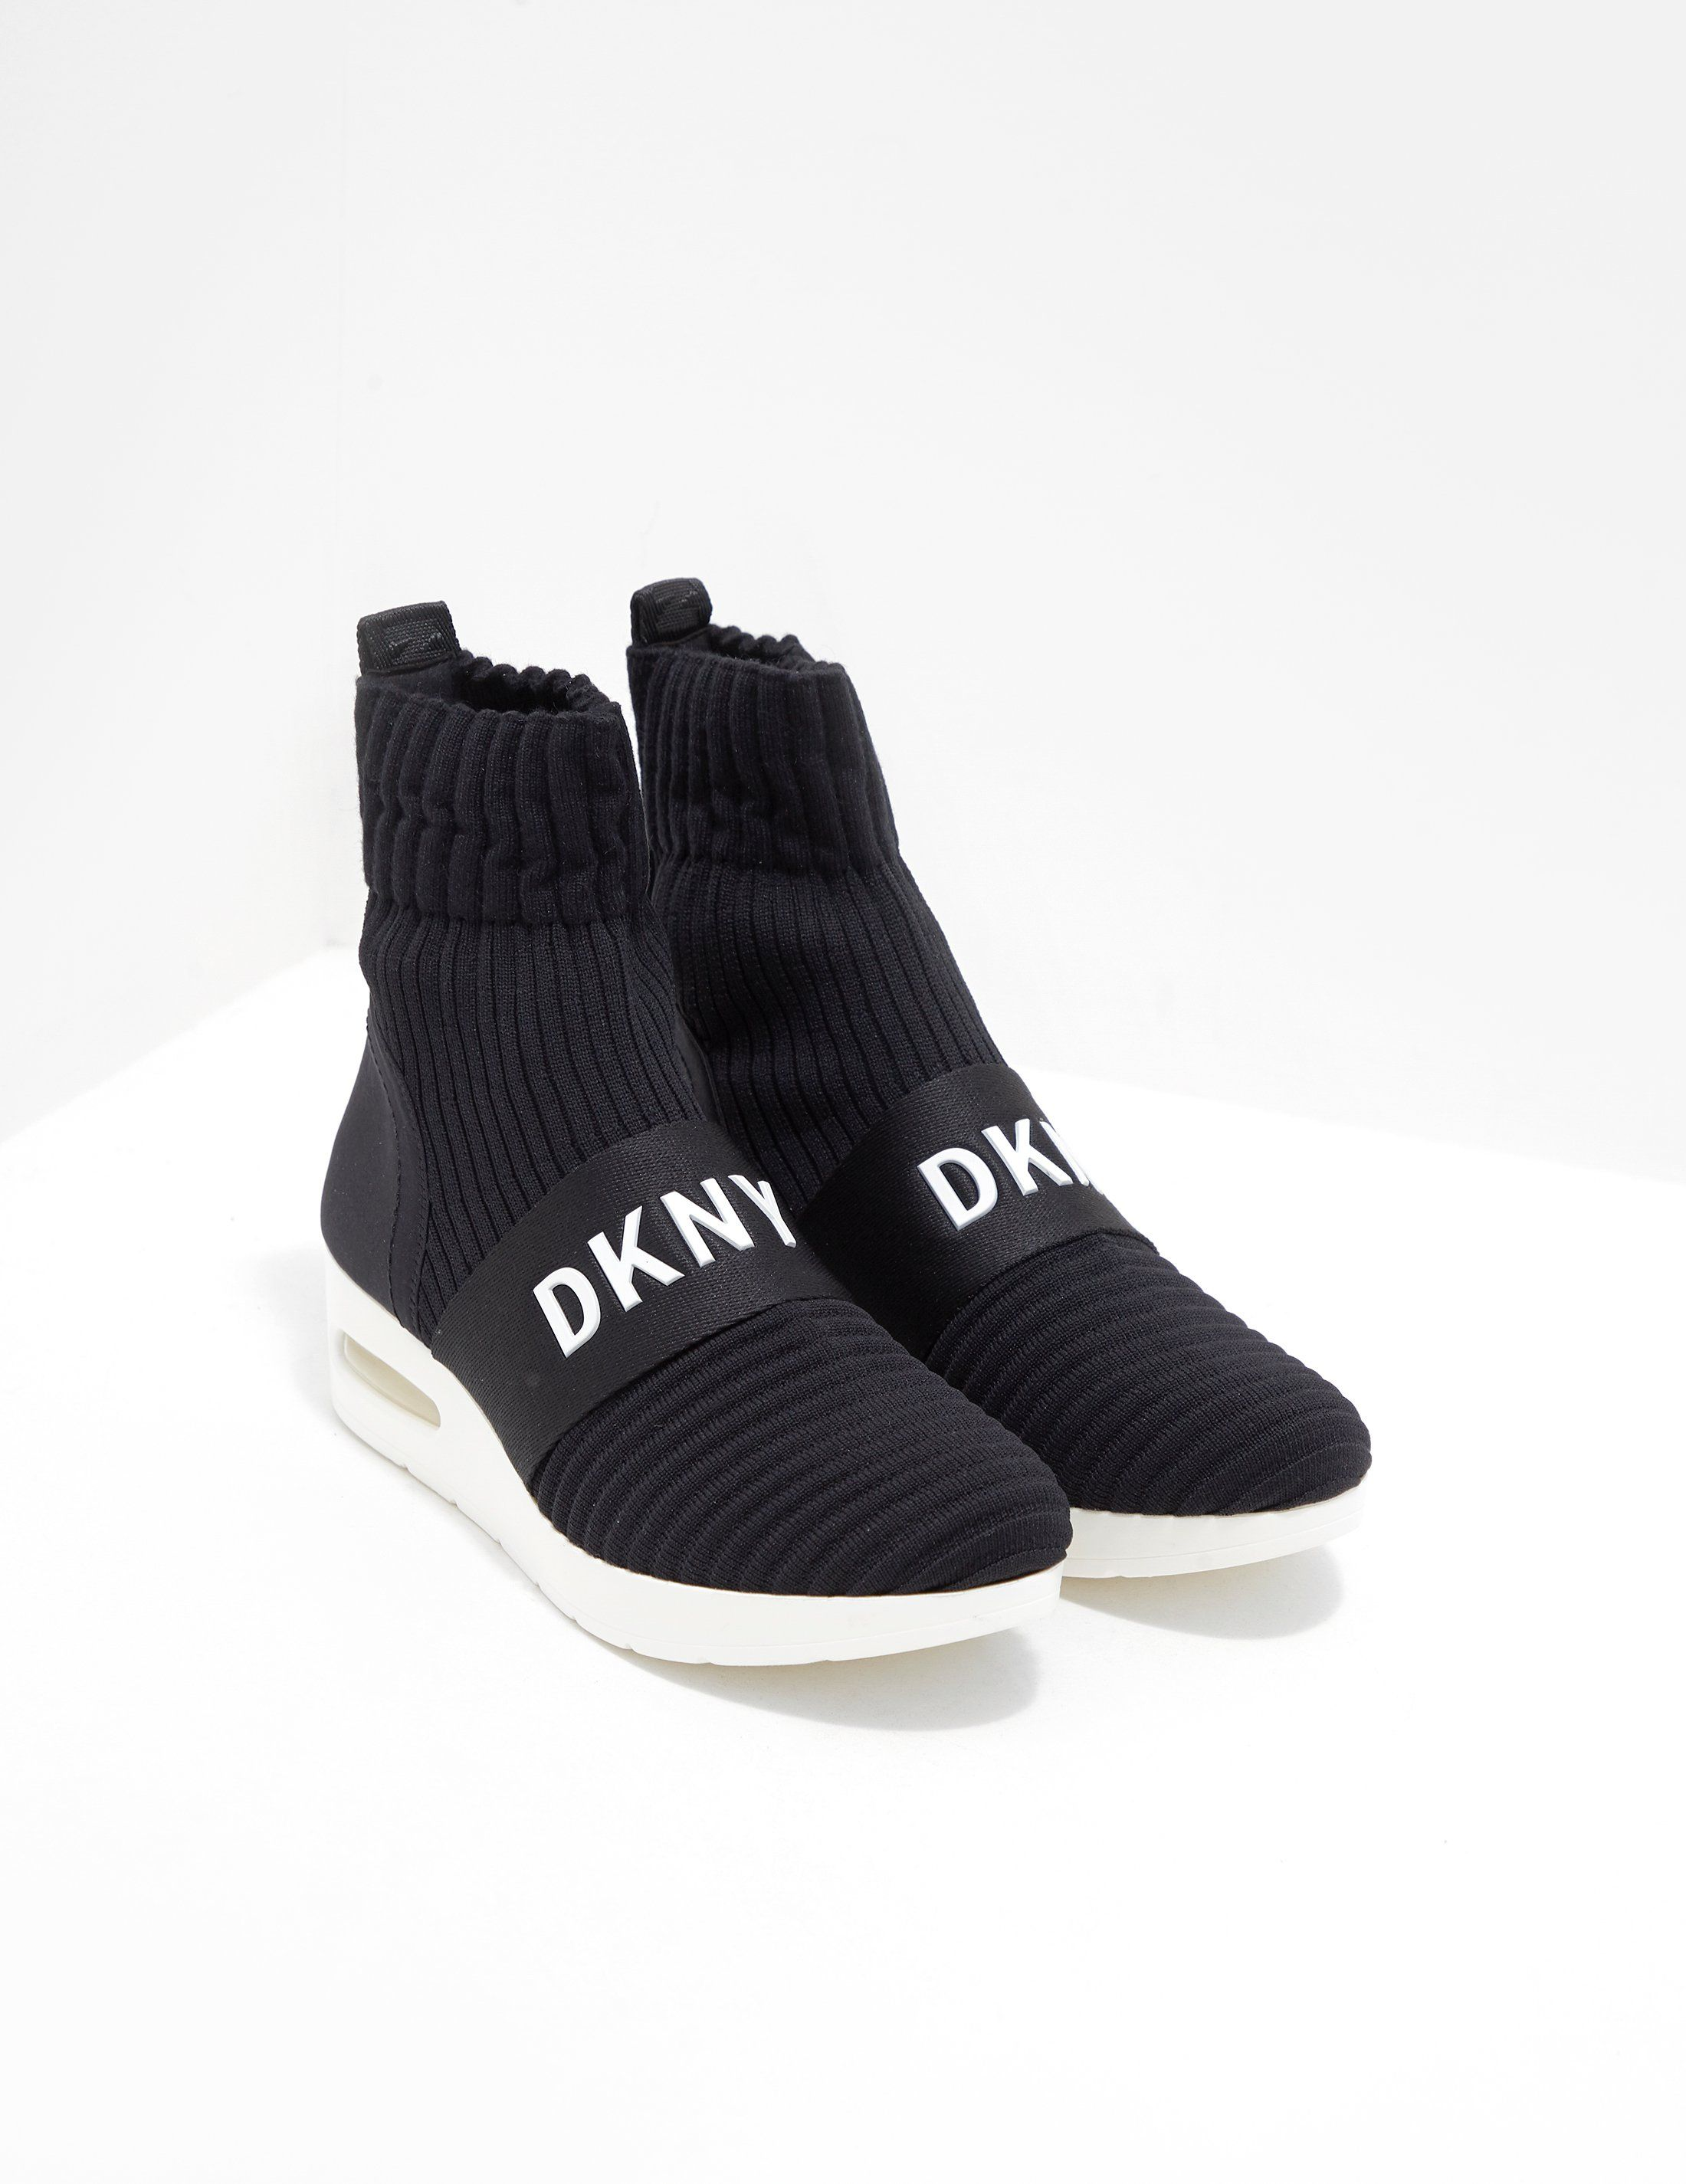 DKNY Anna Slip On Wedge Trainers